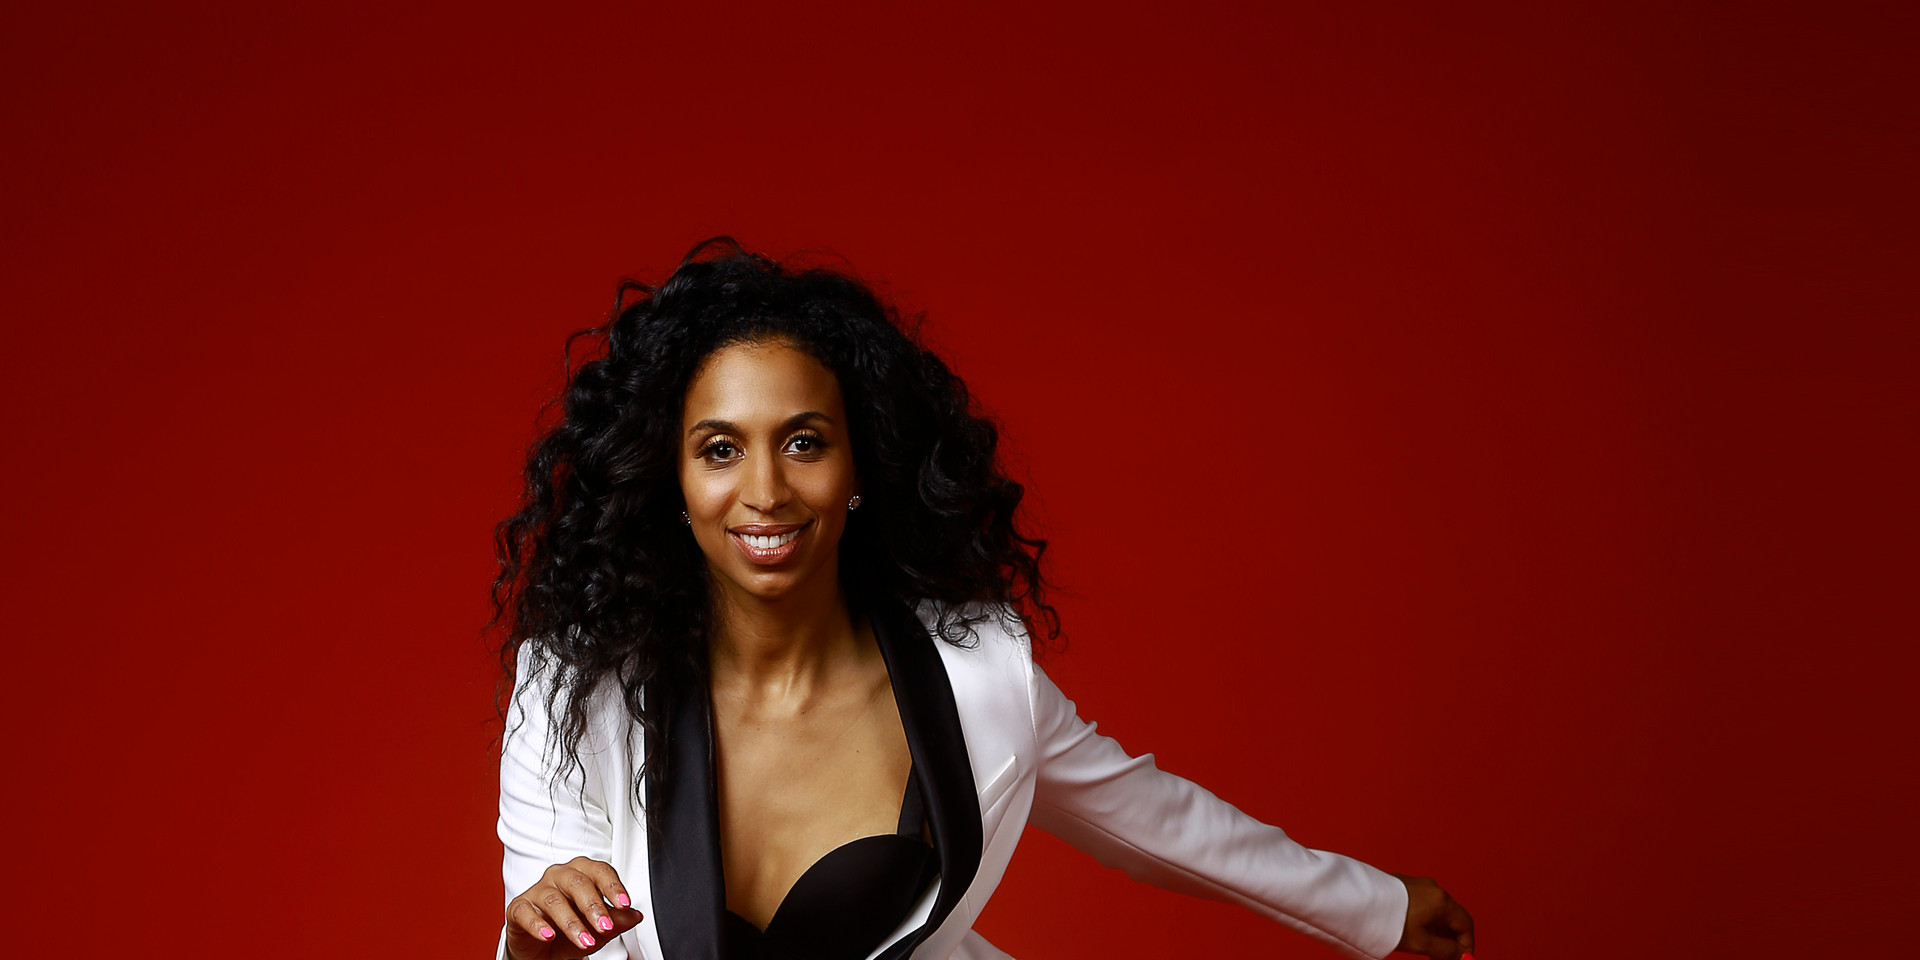 CHLOE ARNOLD EMMY NOMINATED TAP DANCE SUIT CLASSIC.JPG